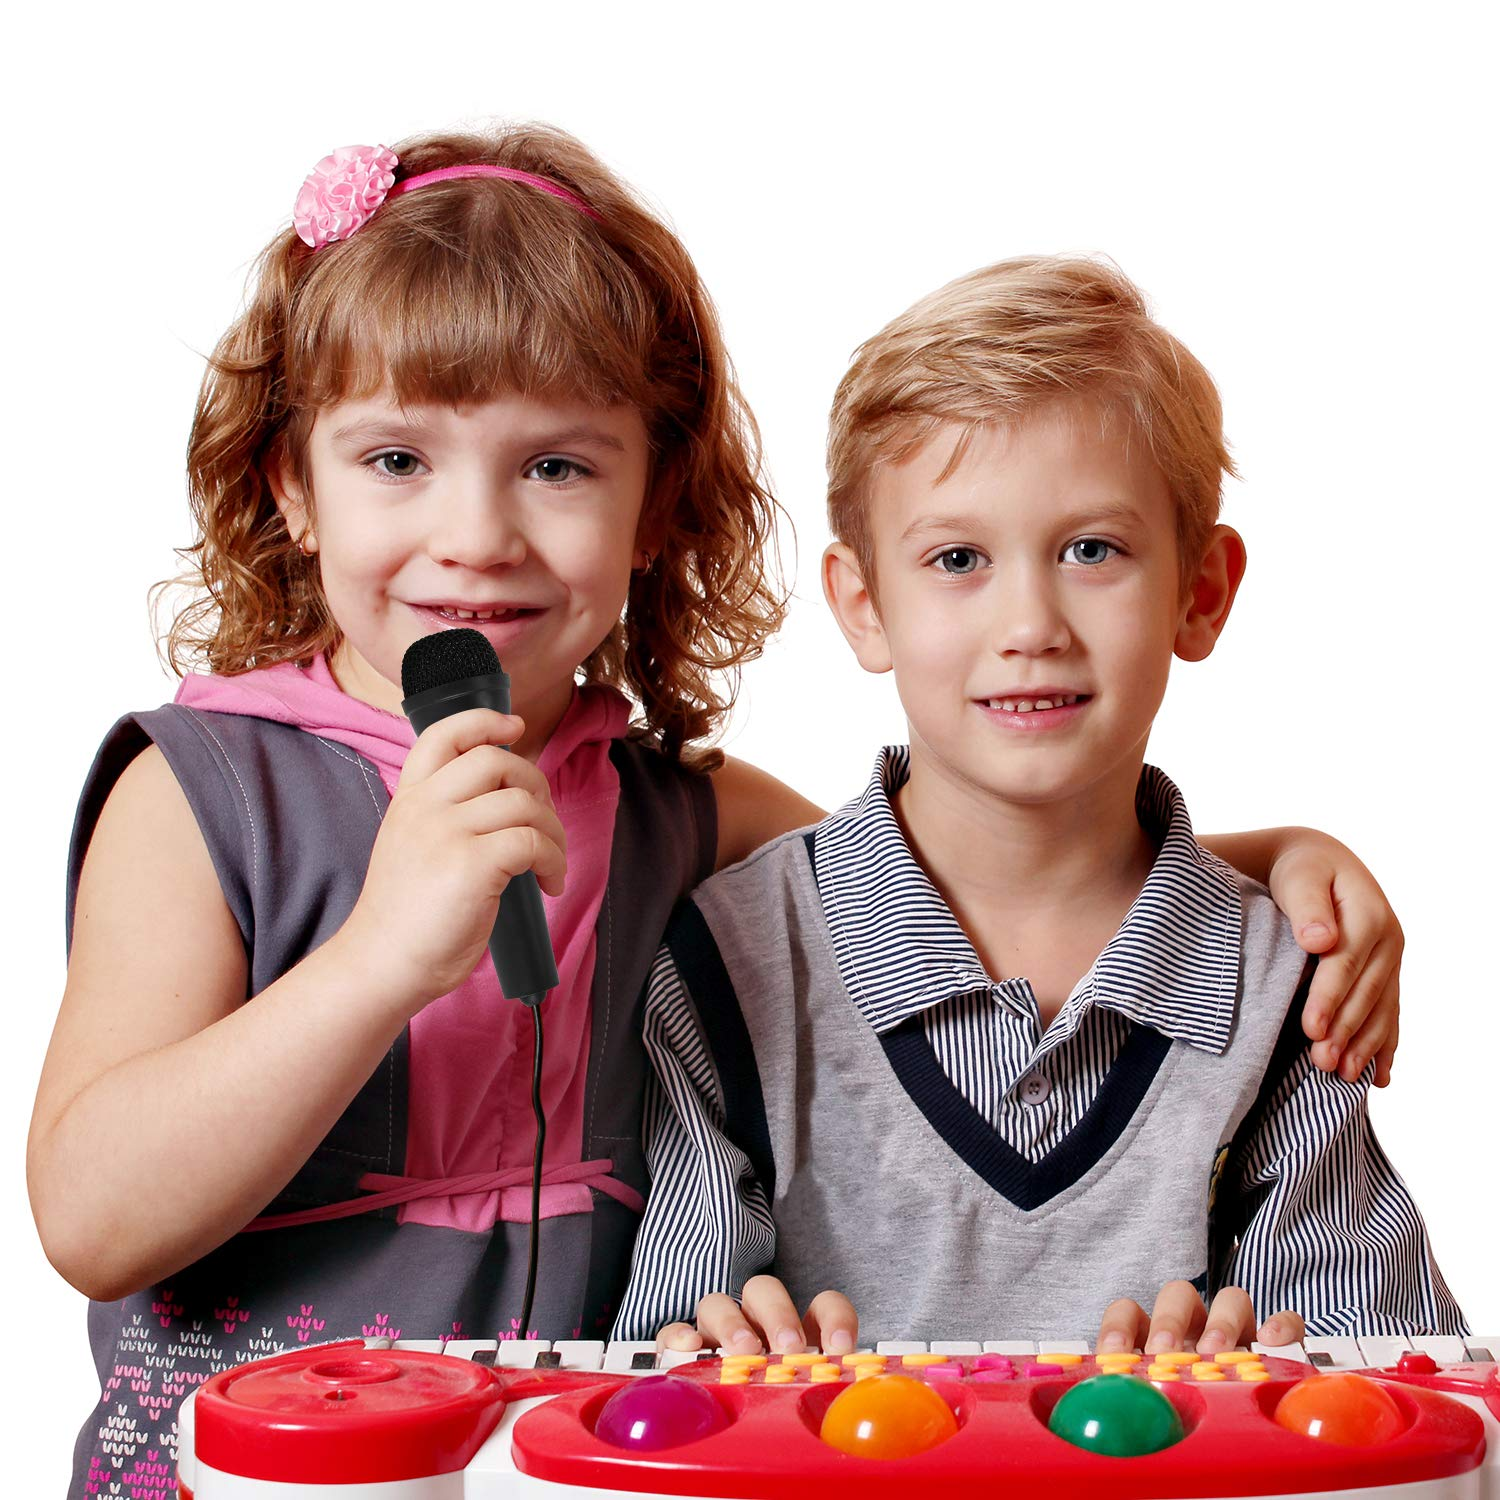 3.5mm Plug and Play Microphones for Kids Piano Keyboard Singing PC Computer Video Recording Karaoke Microphone for Kids Online Chatting